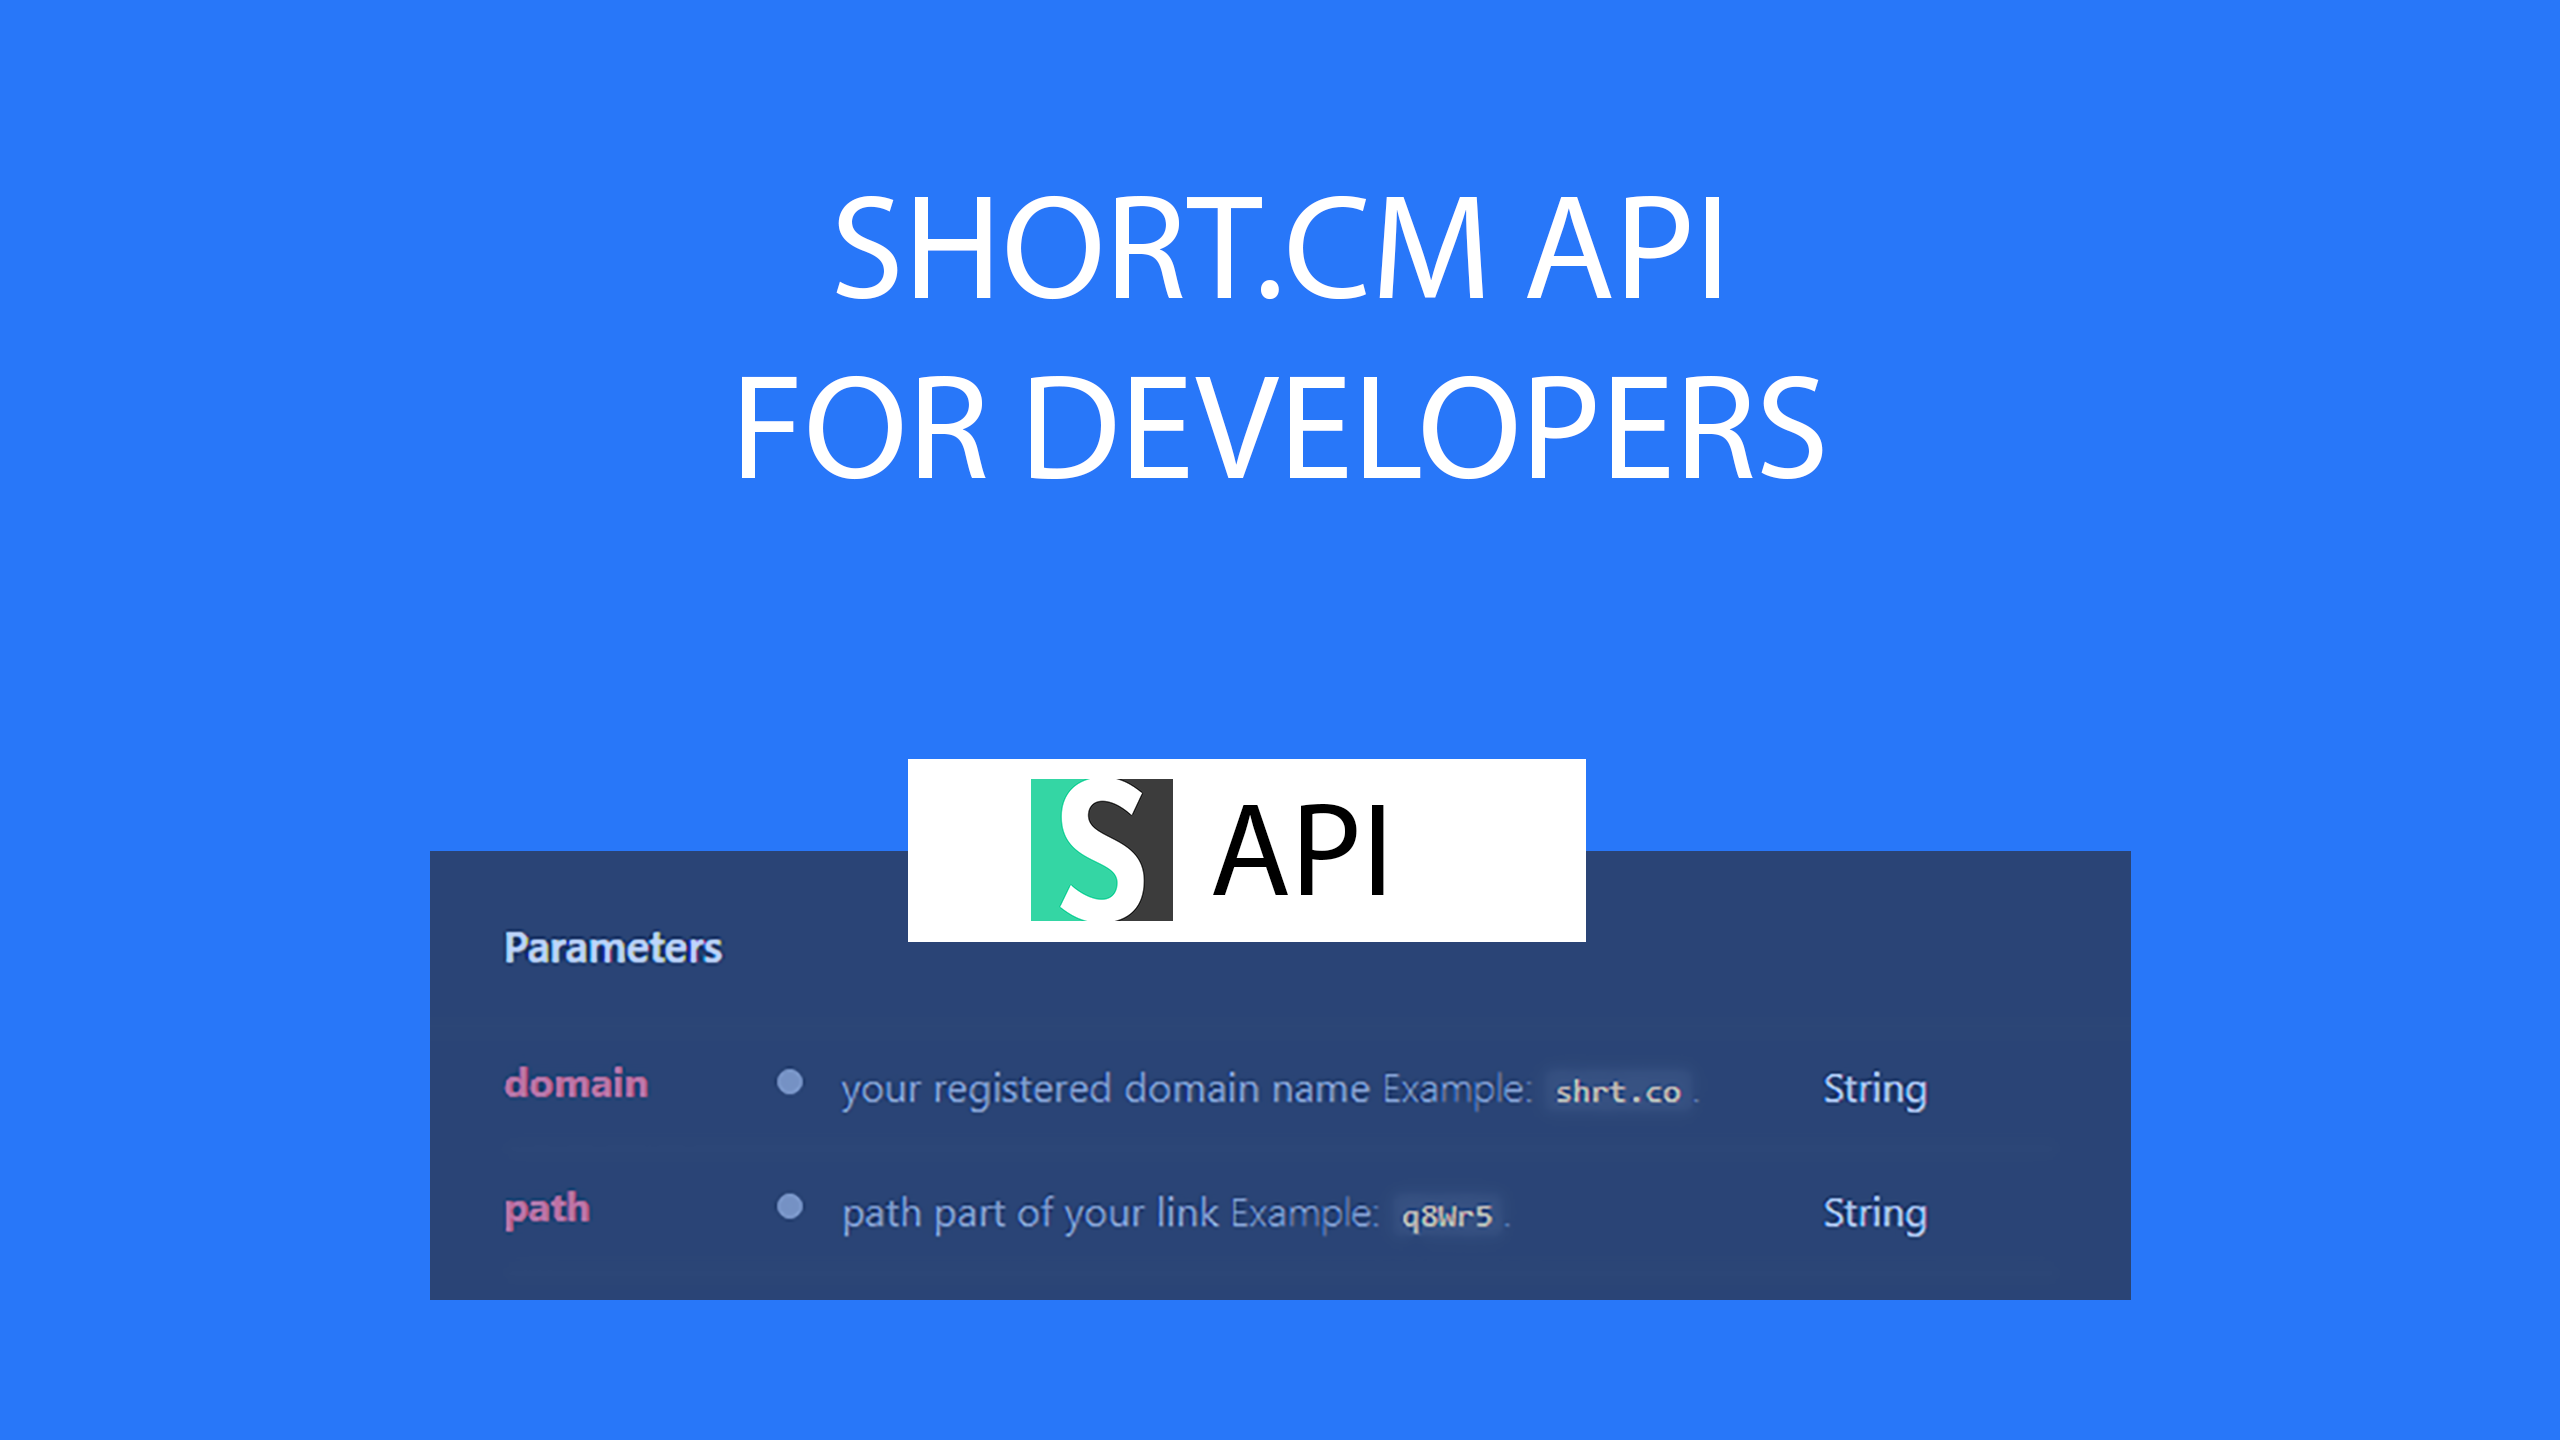 Create short links in your app with Short.cm API